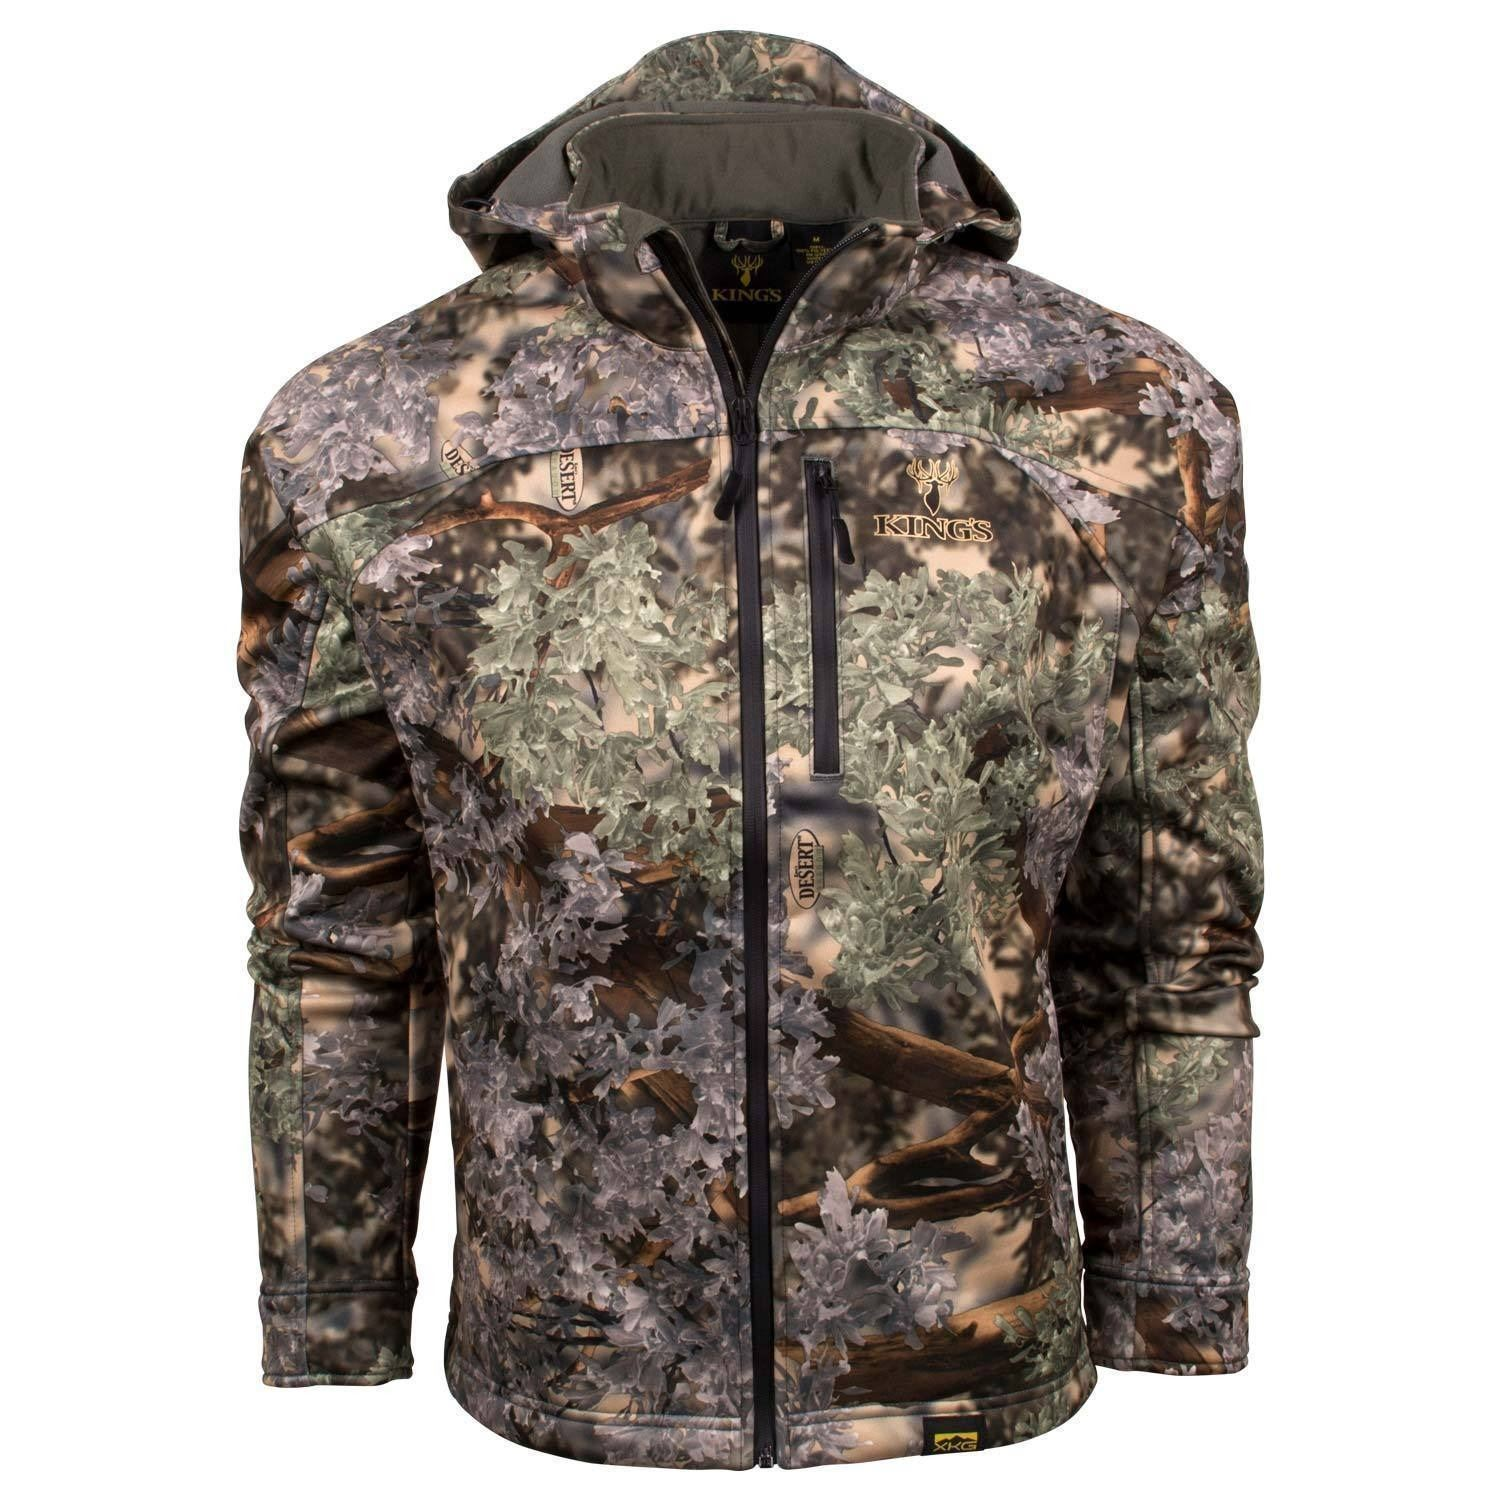 2019 Display Item - The Six Piece XKG Bundle from King's Camo- Sold As Is